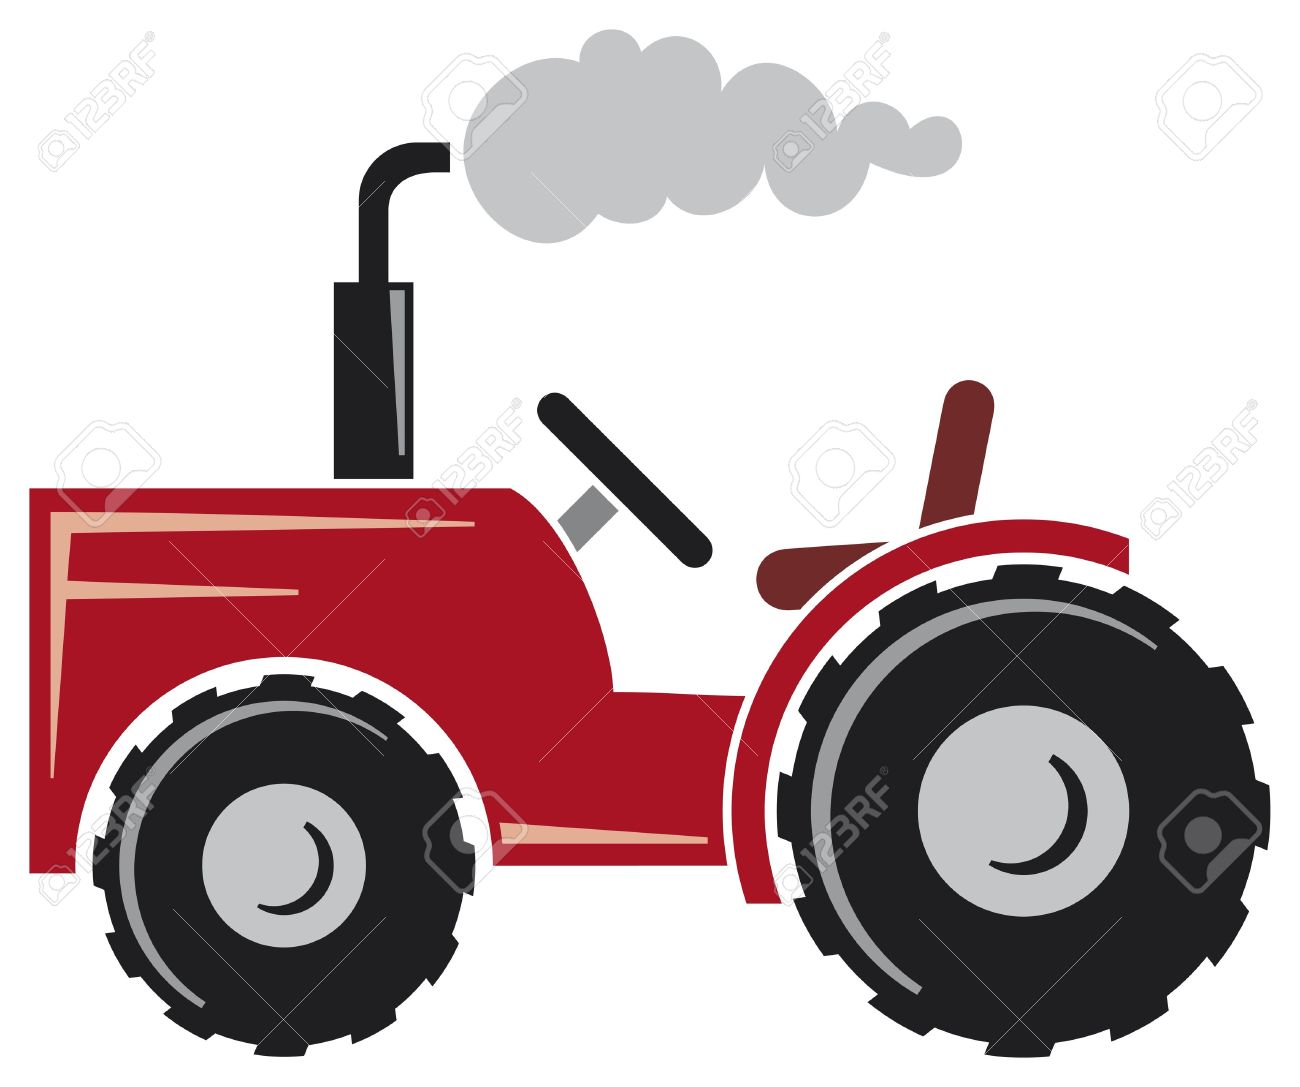 Tractor icon clipart picture freeuse download Tractor Clipart Black And White | Free download best Tractor ... picture freeuse download